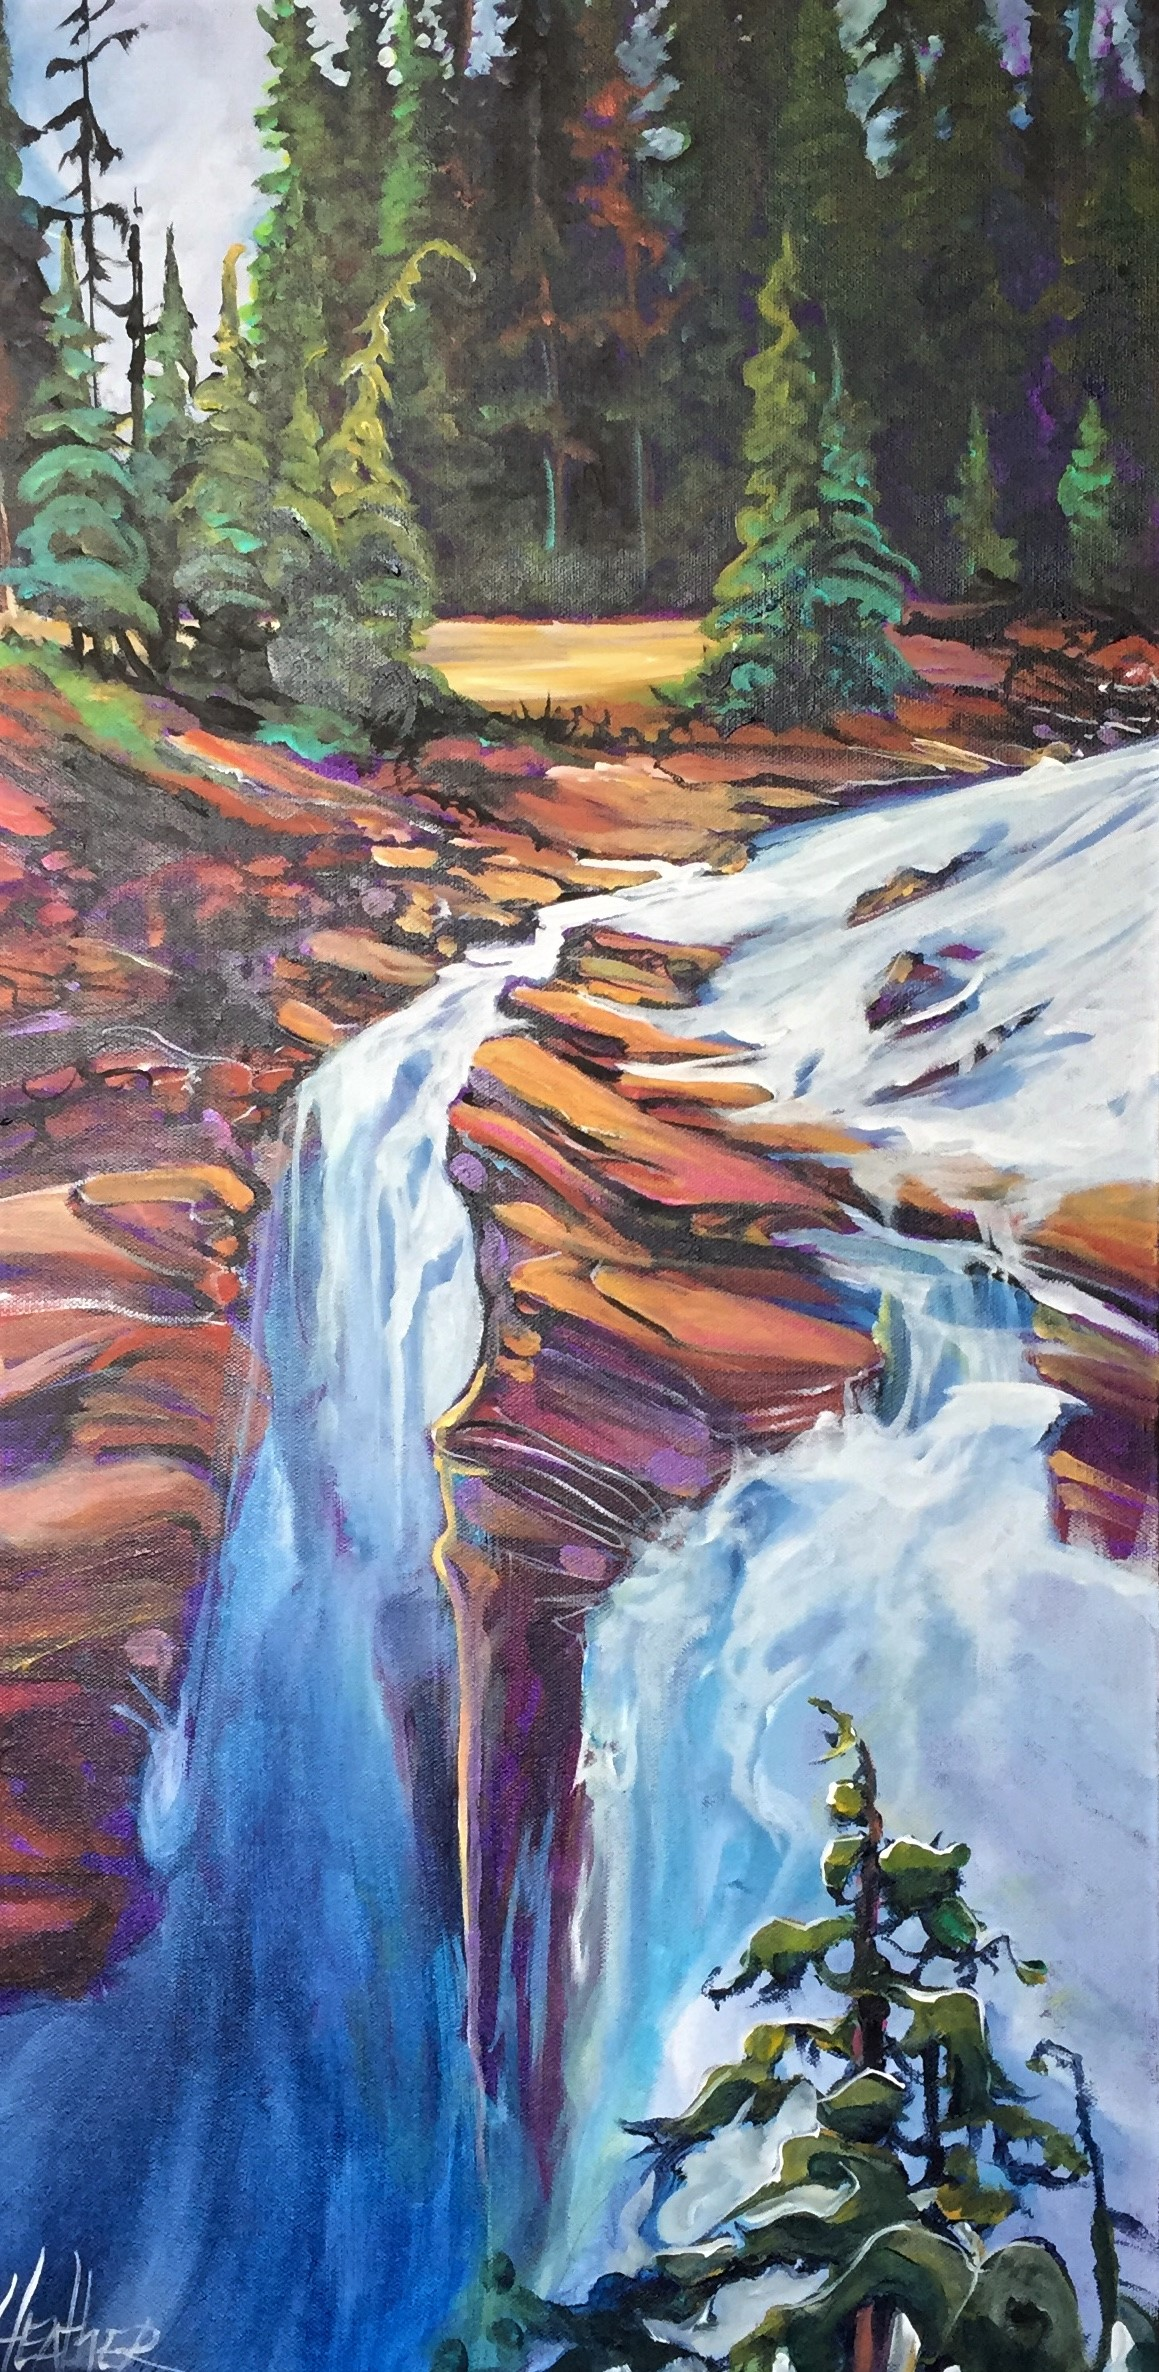 What a Wonder Athabasca Falls 15x30